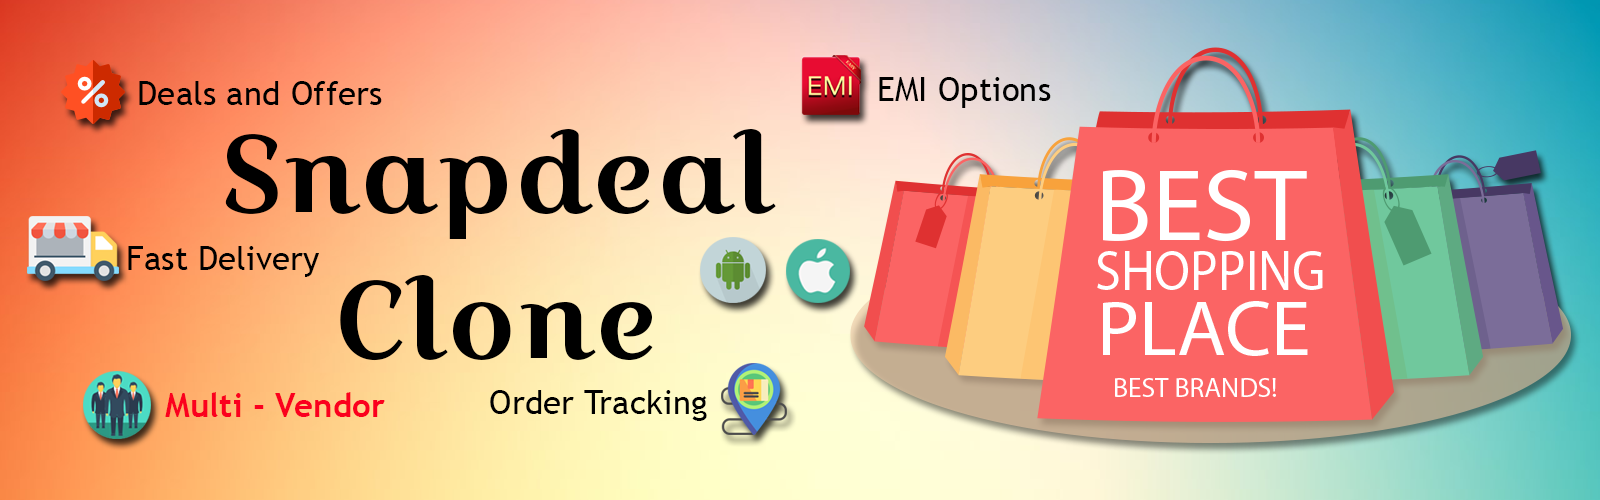 SNAPDEAL CLONE BANNER